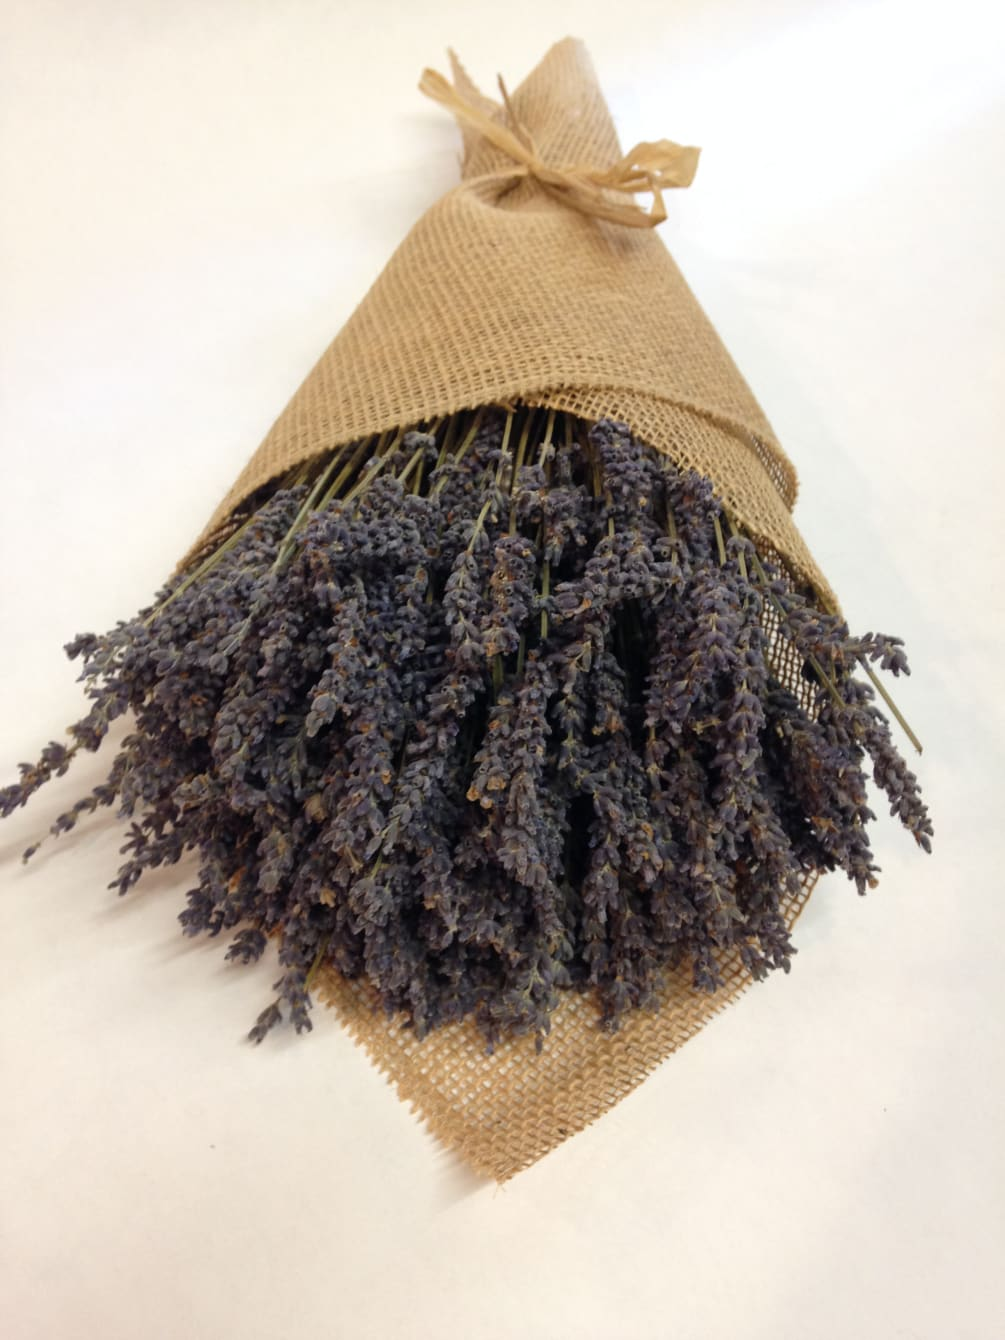 Dried French Lavender Wrapped In Burlap